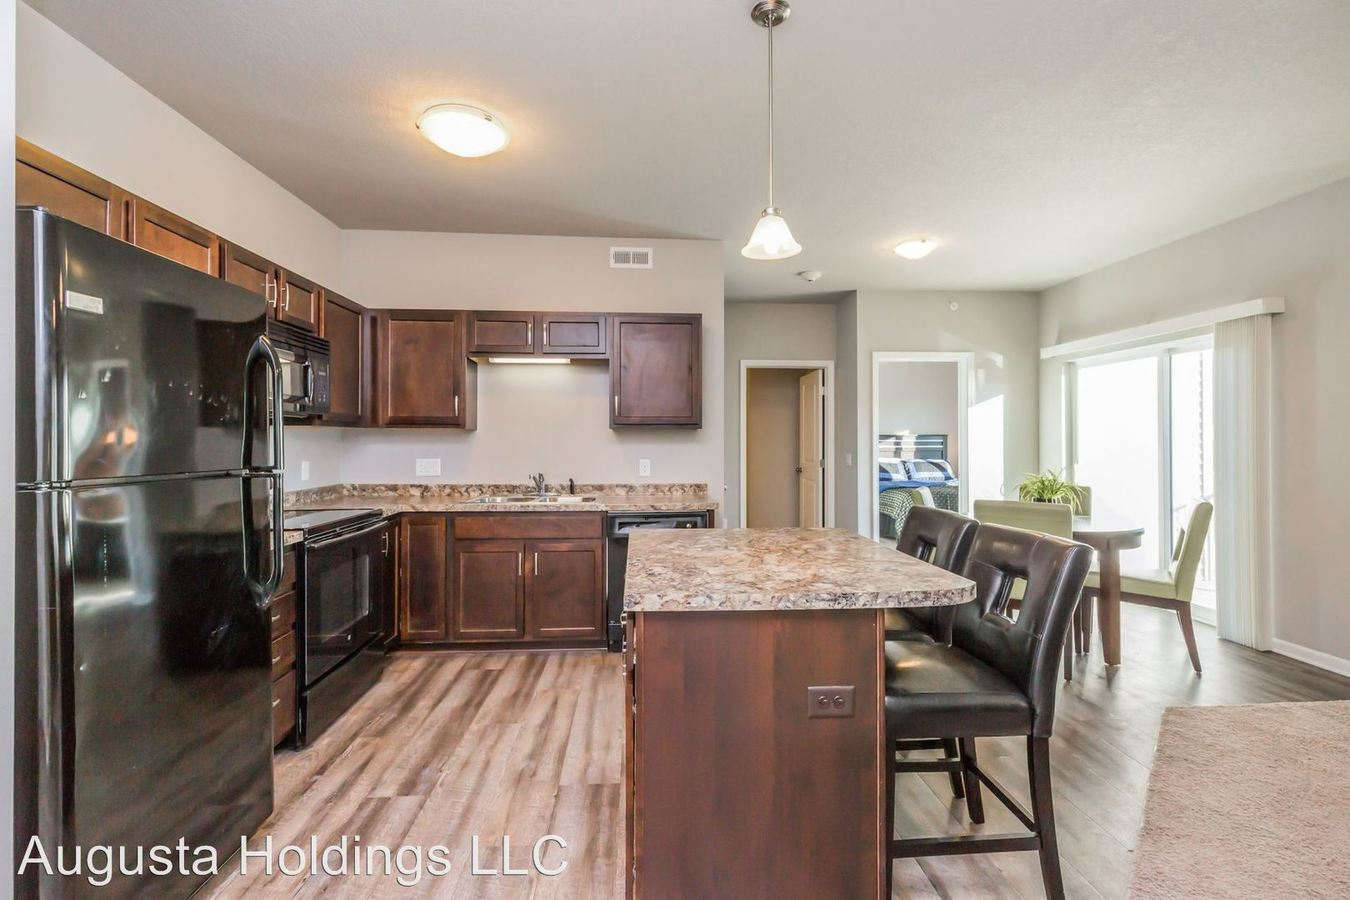 2 Bedrooms 2 Bathrooms Apartment for rent at 10509 Dorset Drive in Johnston, IA